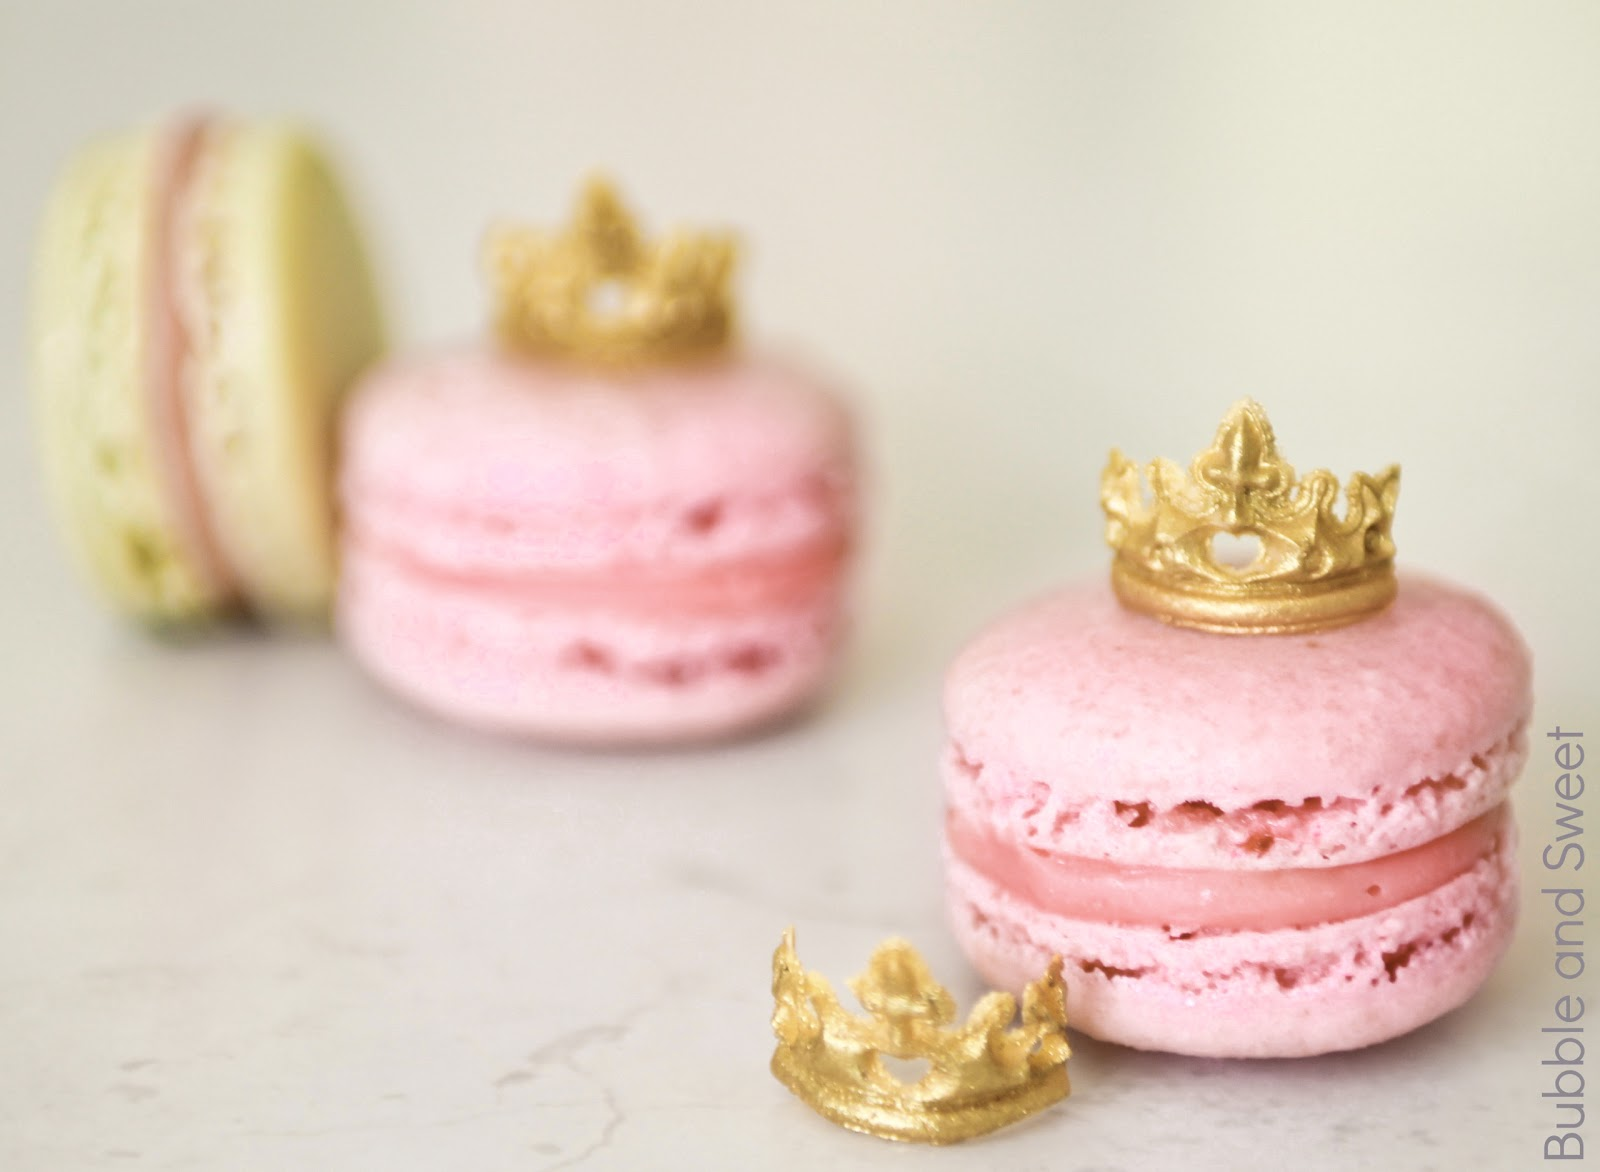 Bubble And Sweet Princess Macarons With Mini Edible Tiaras Or How To Eat A Tiara 2